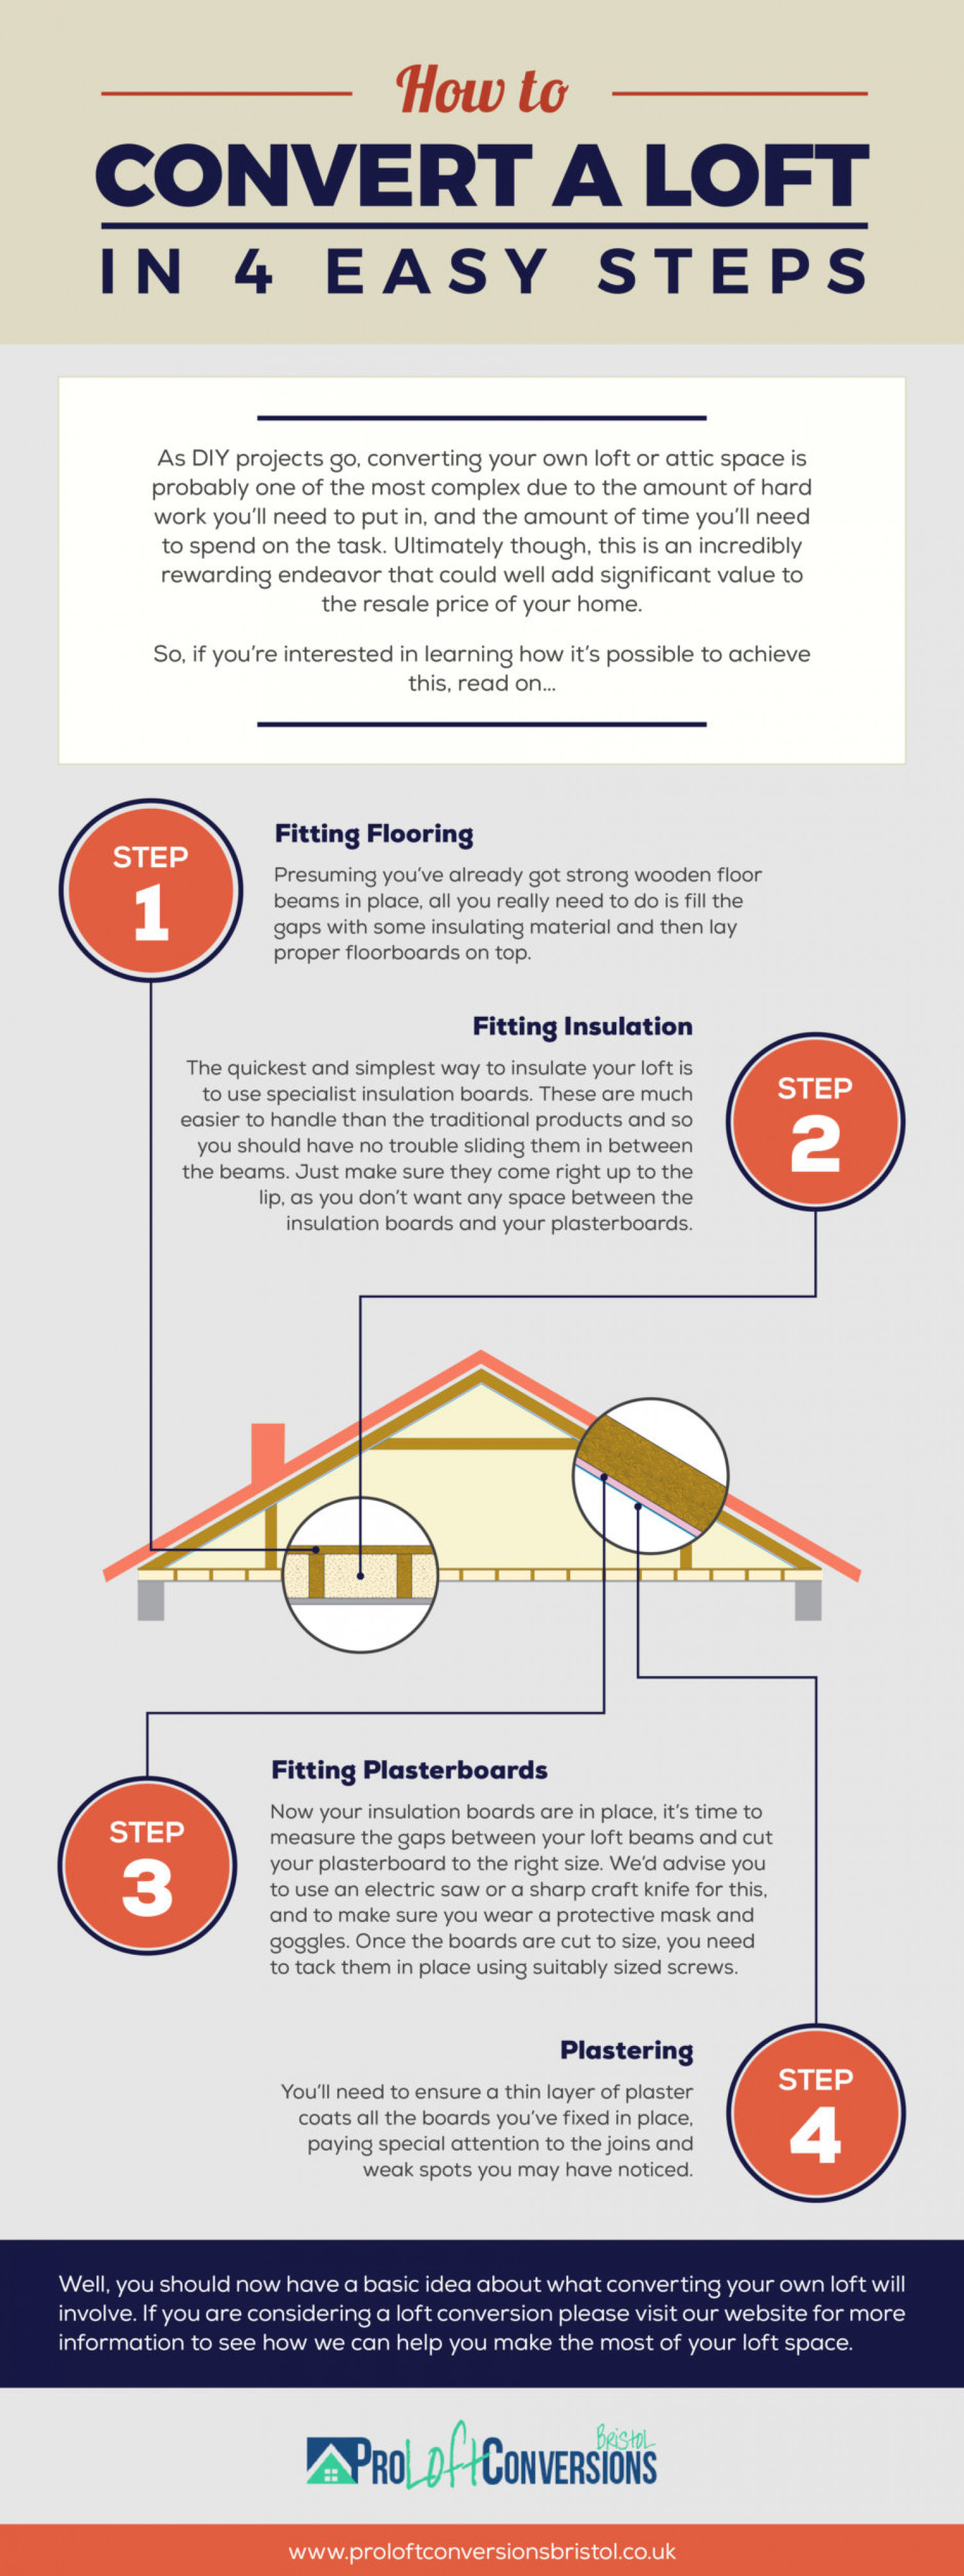 How to Convert A Loft In 4 Easy Steps Infographic